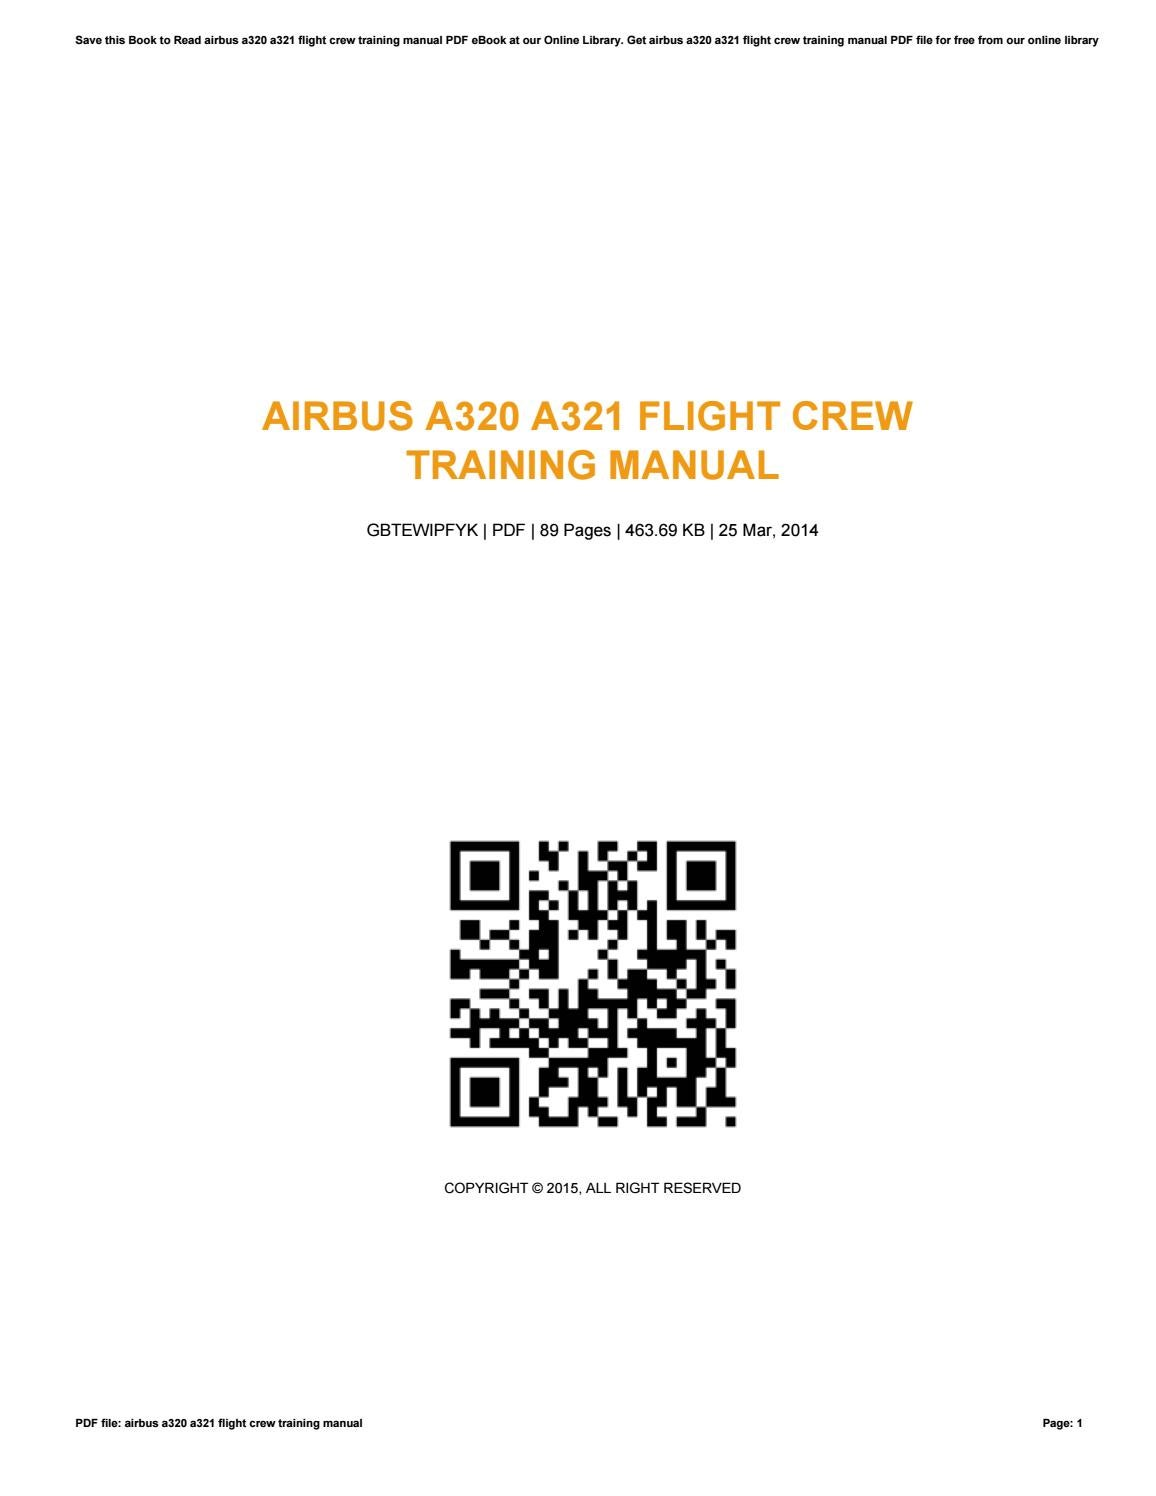 Airbus a320 a321 flight crew training manual by Anthony